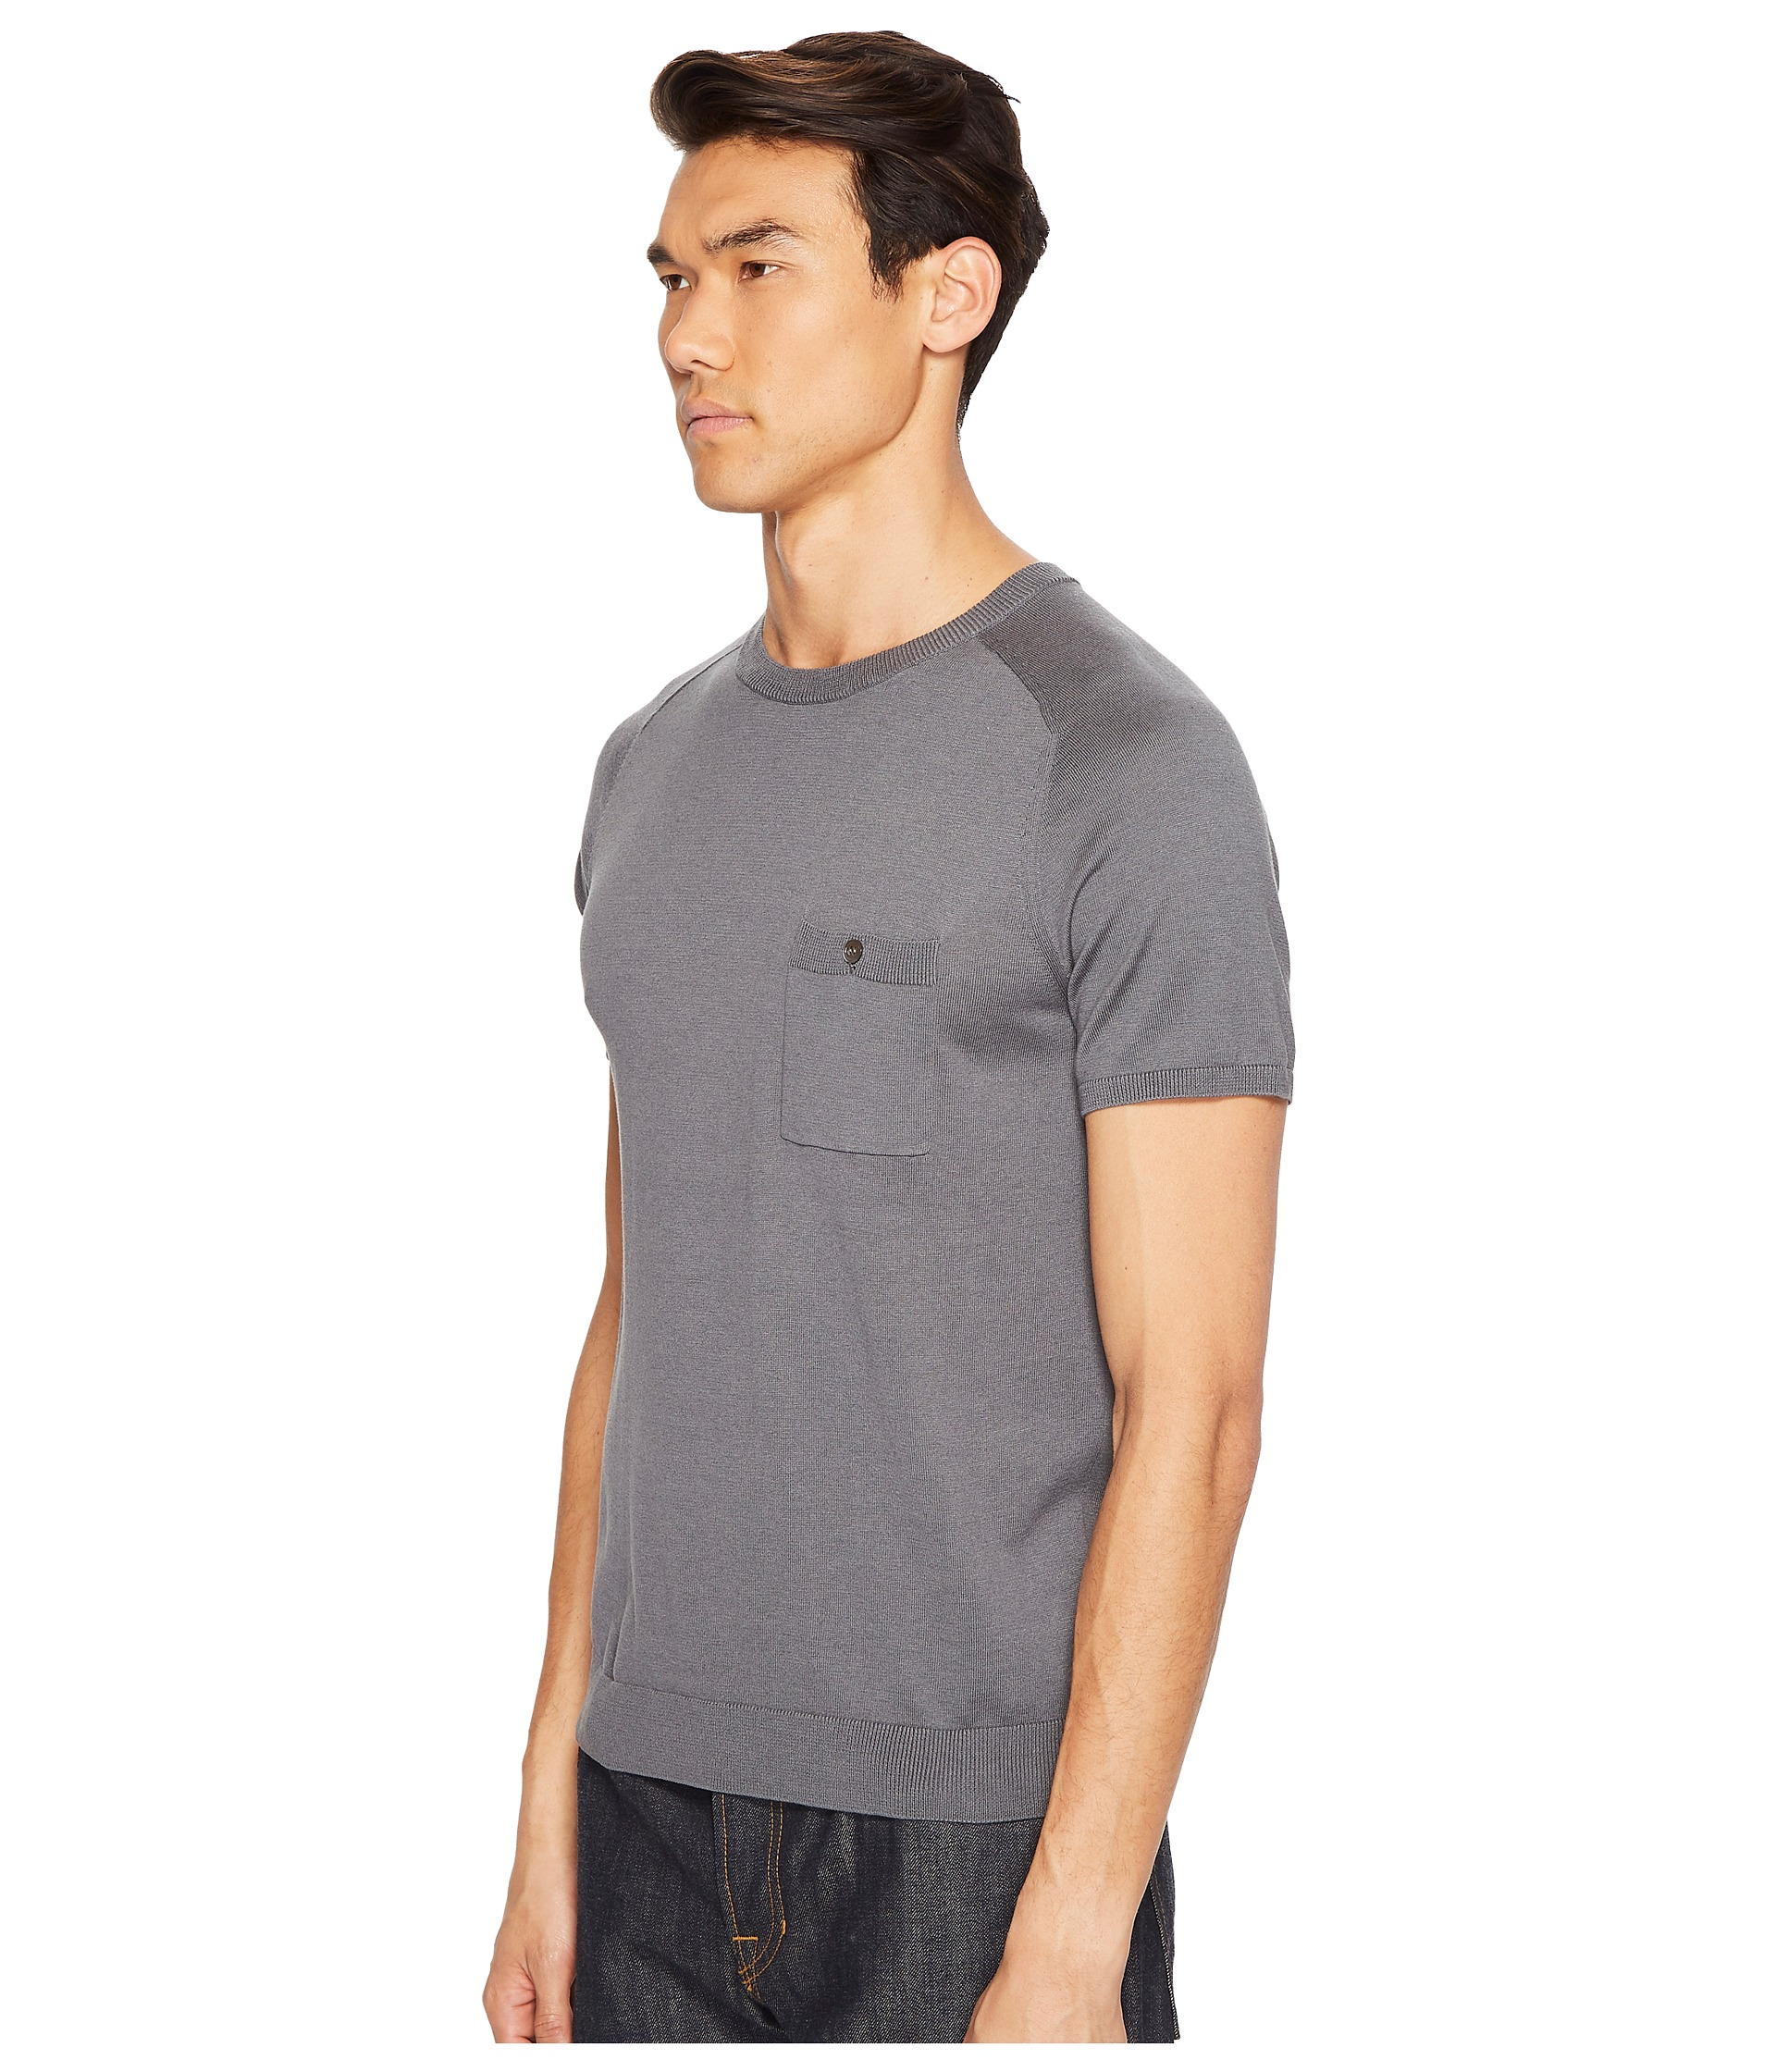 Todd snyder cotton silk t shirt sweater at for Cotton silk tee shirts